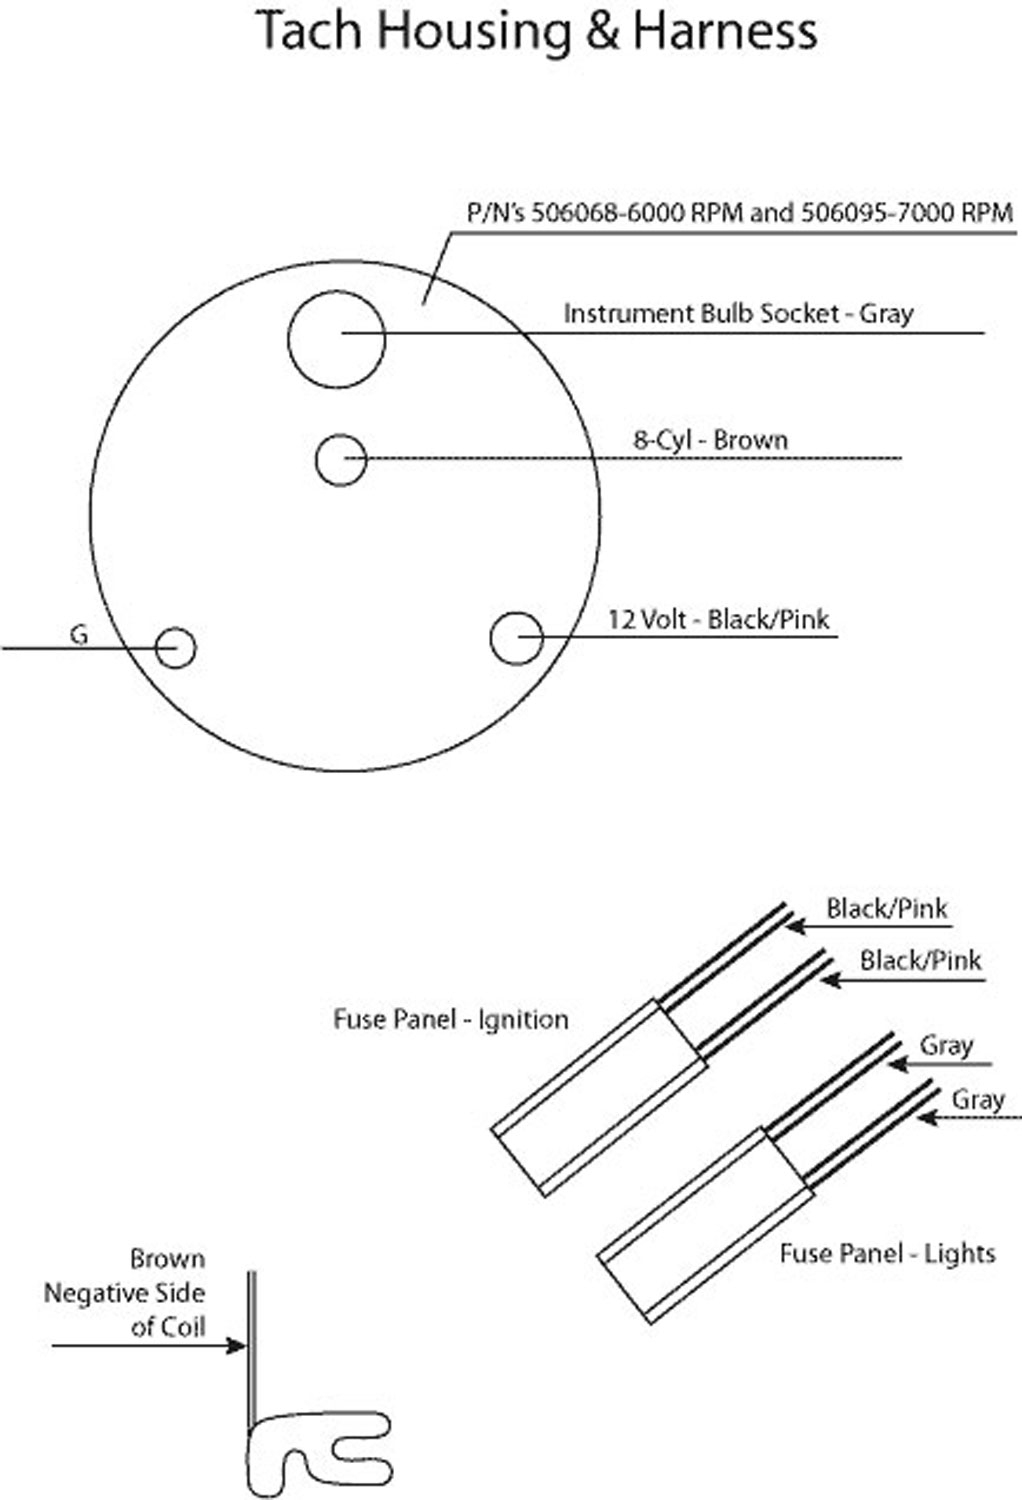 Autometer Tach Wiring Diagram Images Gallery And Saleexpert Me New - Autometer Tach Wiring Diagram